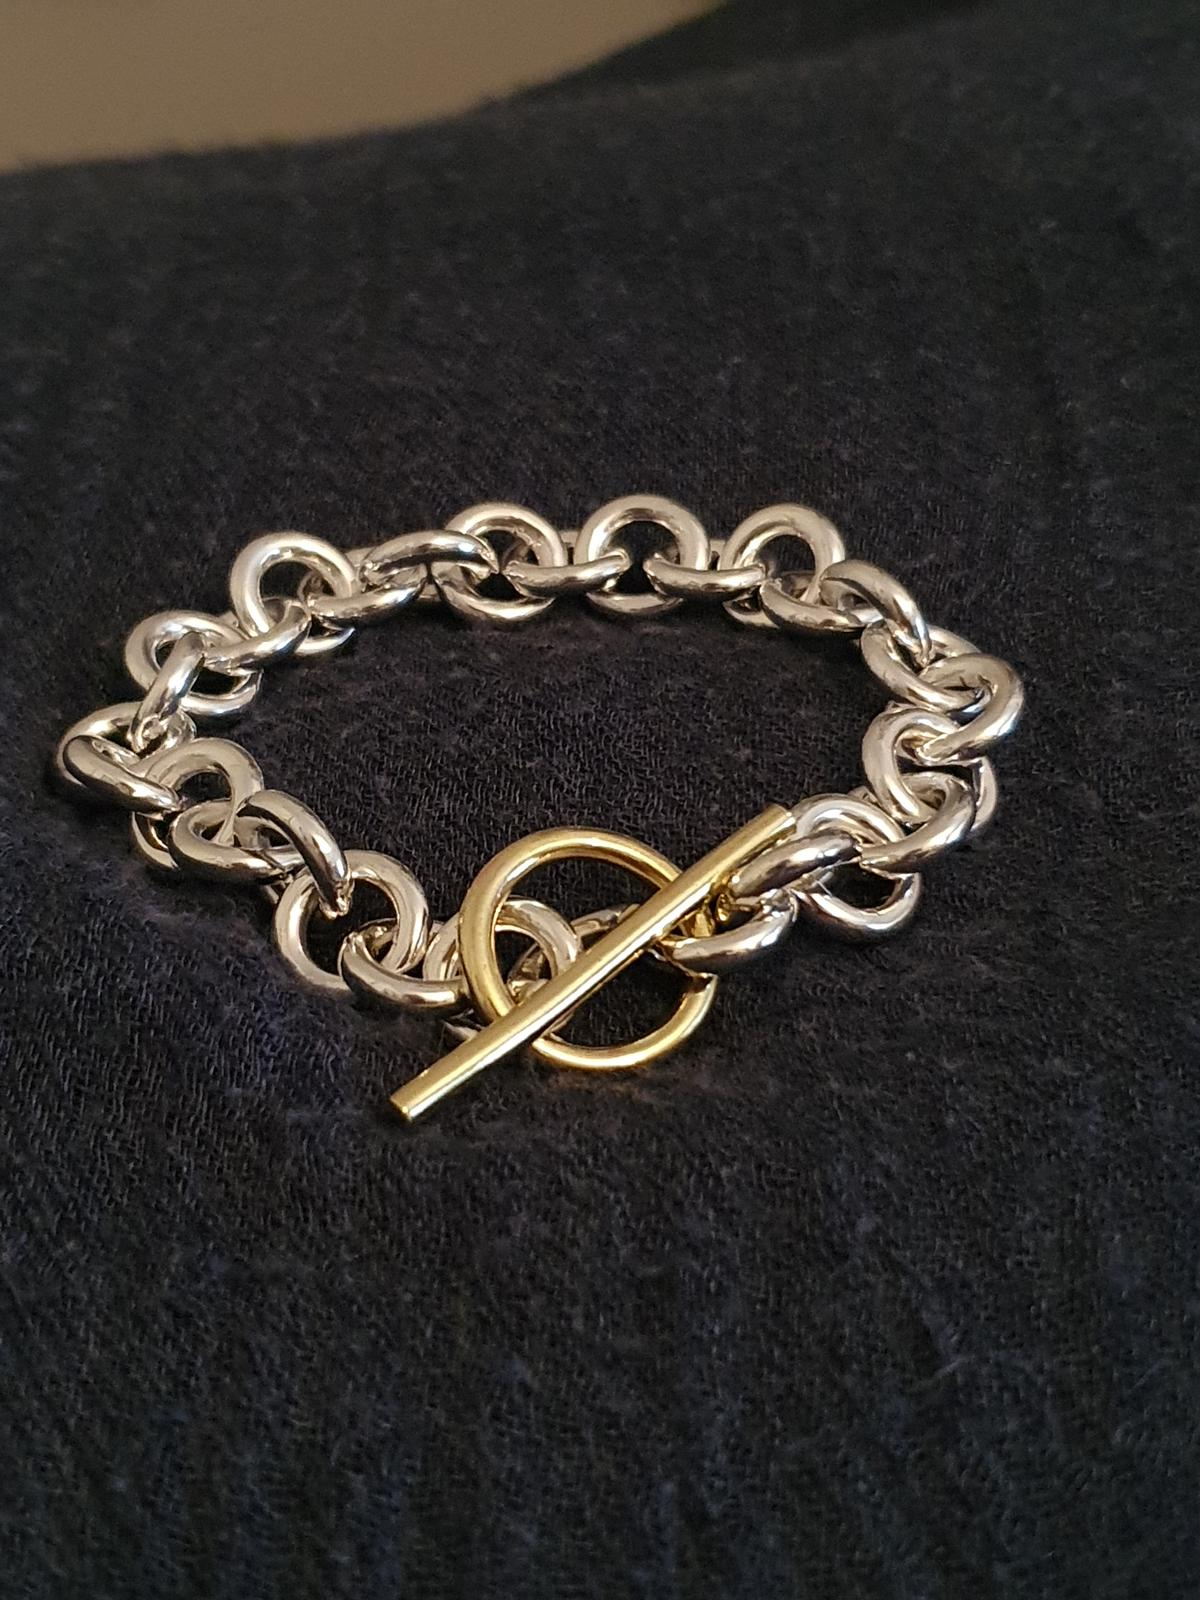 Chunky silver bracelet with brass toggle